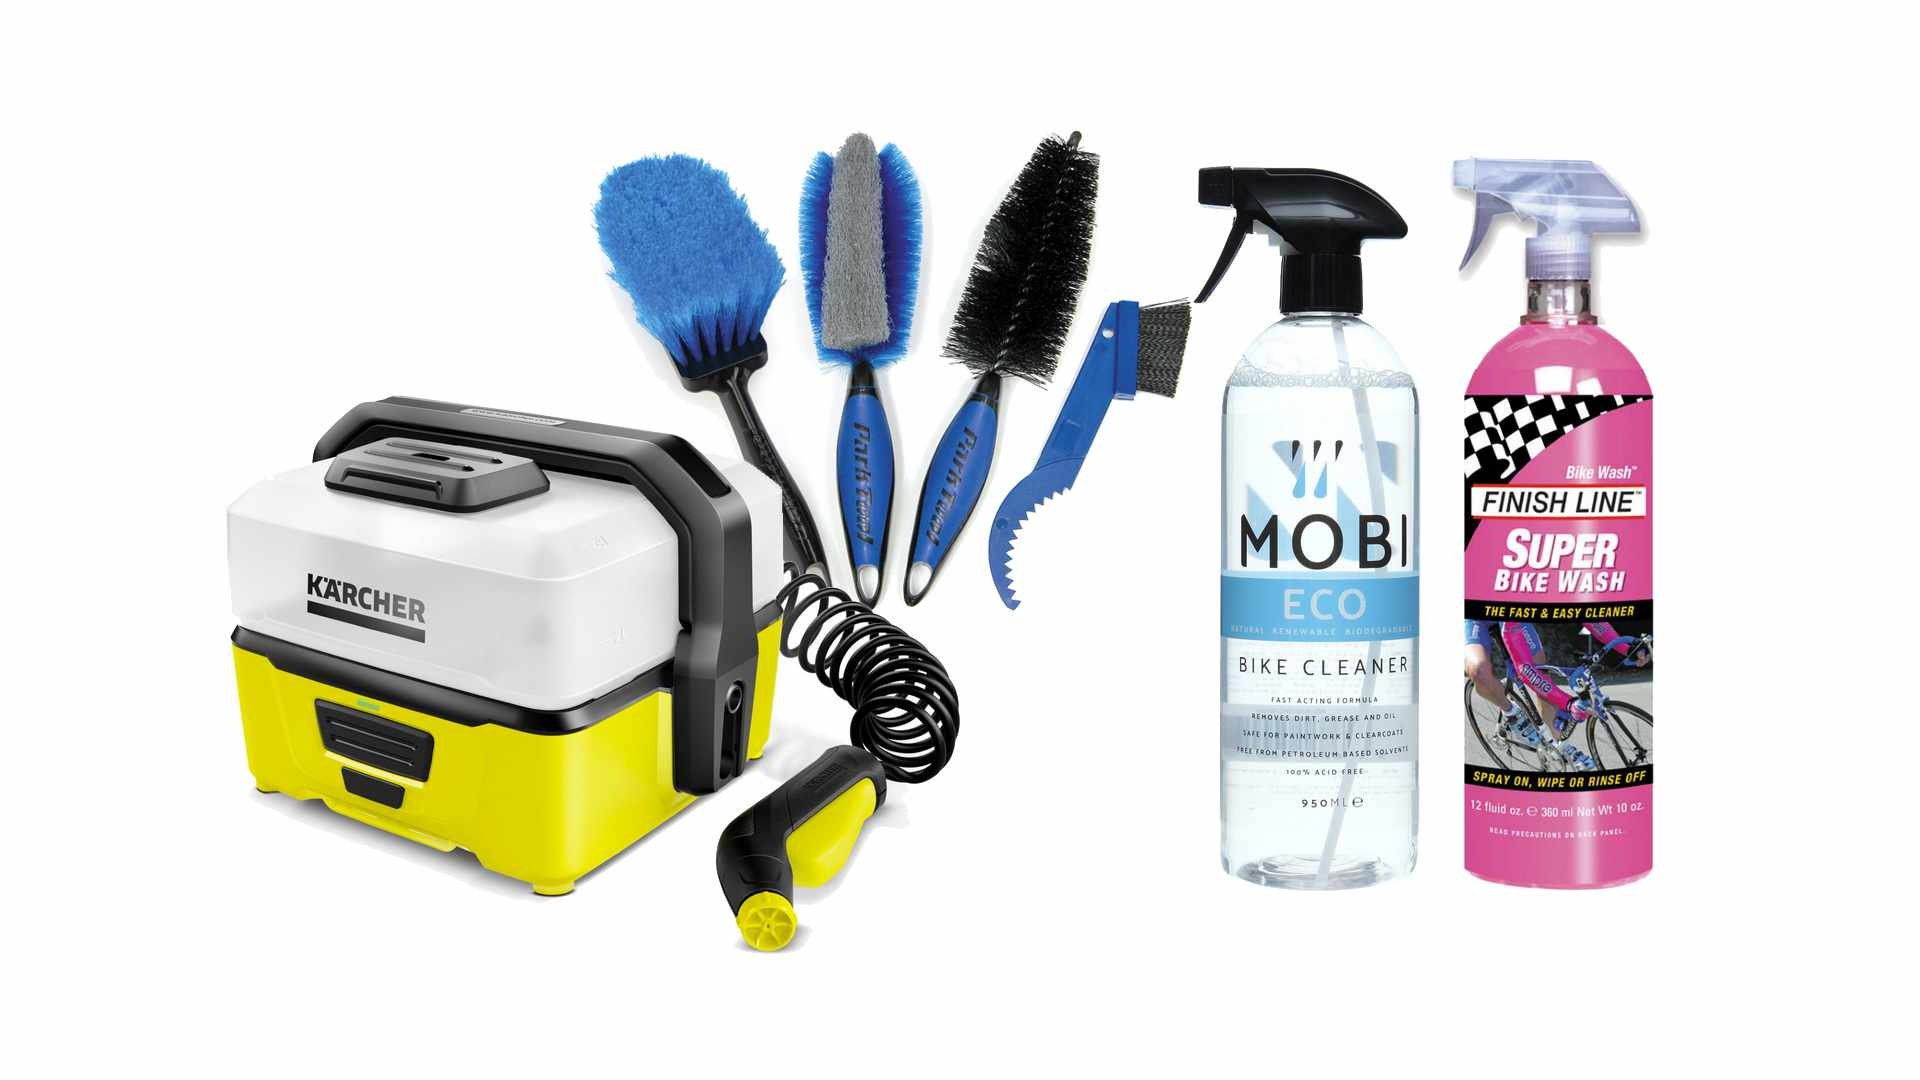 Collage image of cleaning brushes and spray, and a pressure washer, on a white background